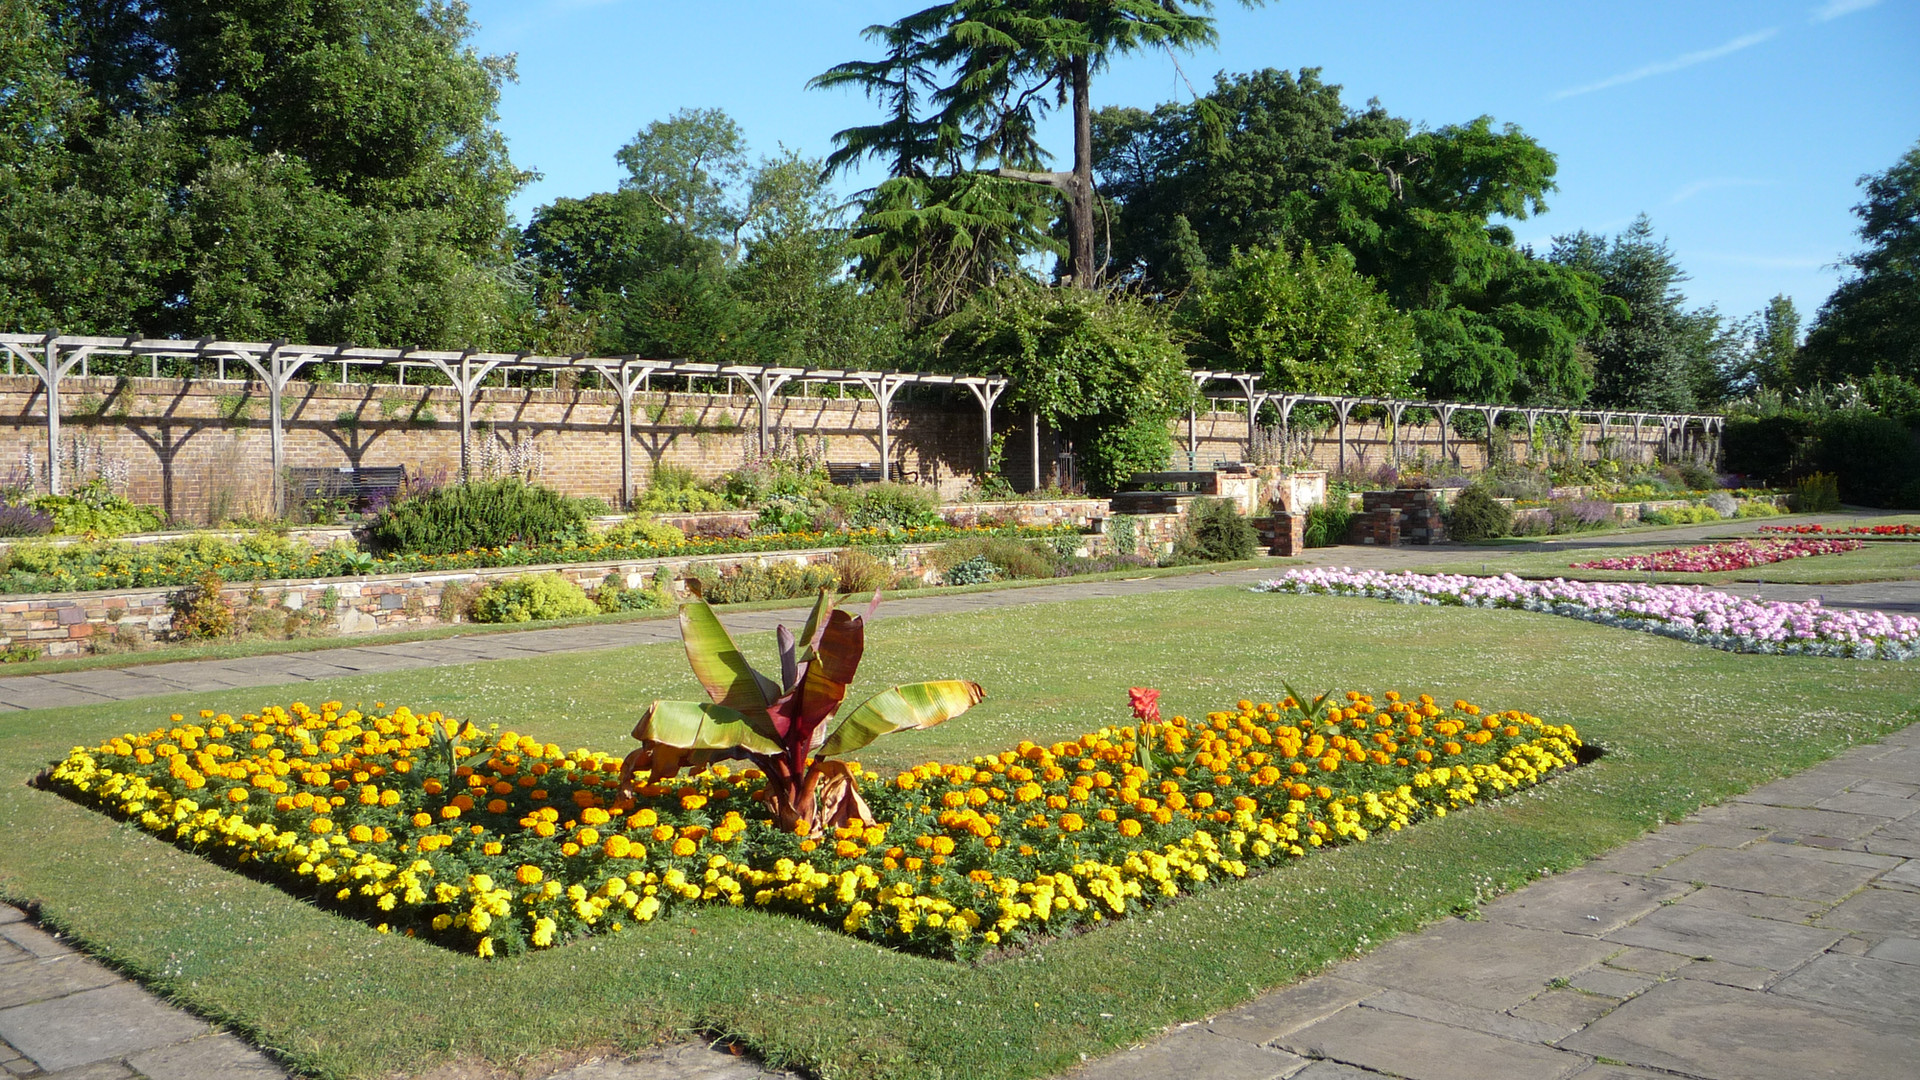 Prittlewell Priory Gardens